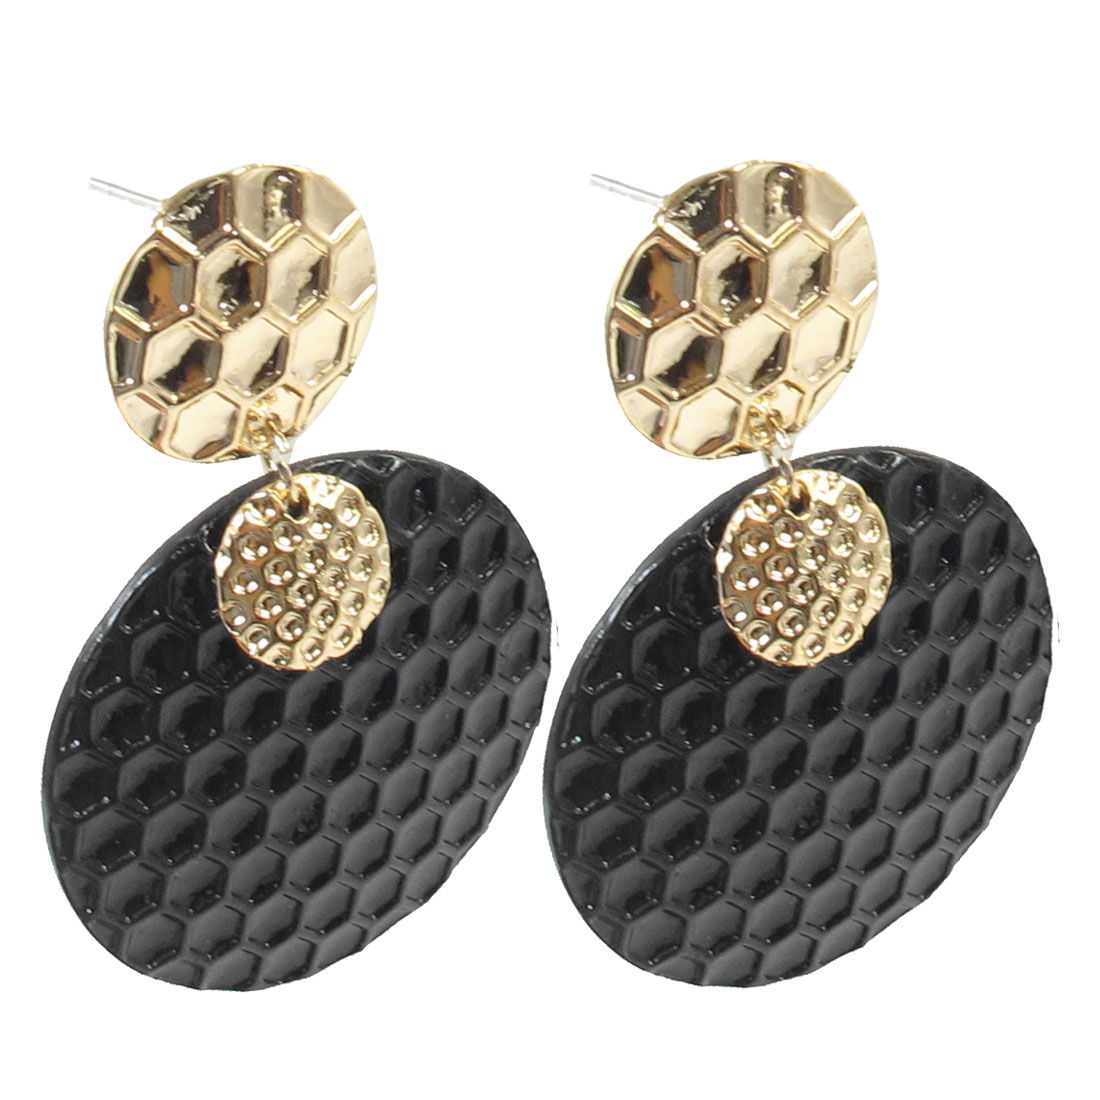 Ladies 2 Pcs Retro Style Black Round Pandent Gold Tone Metal Earbobs Earrings